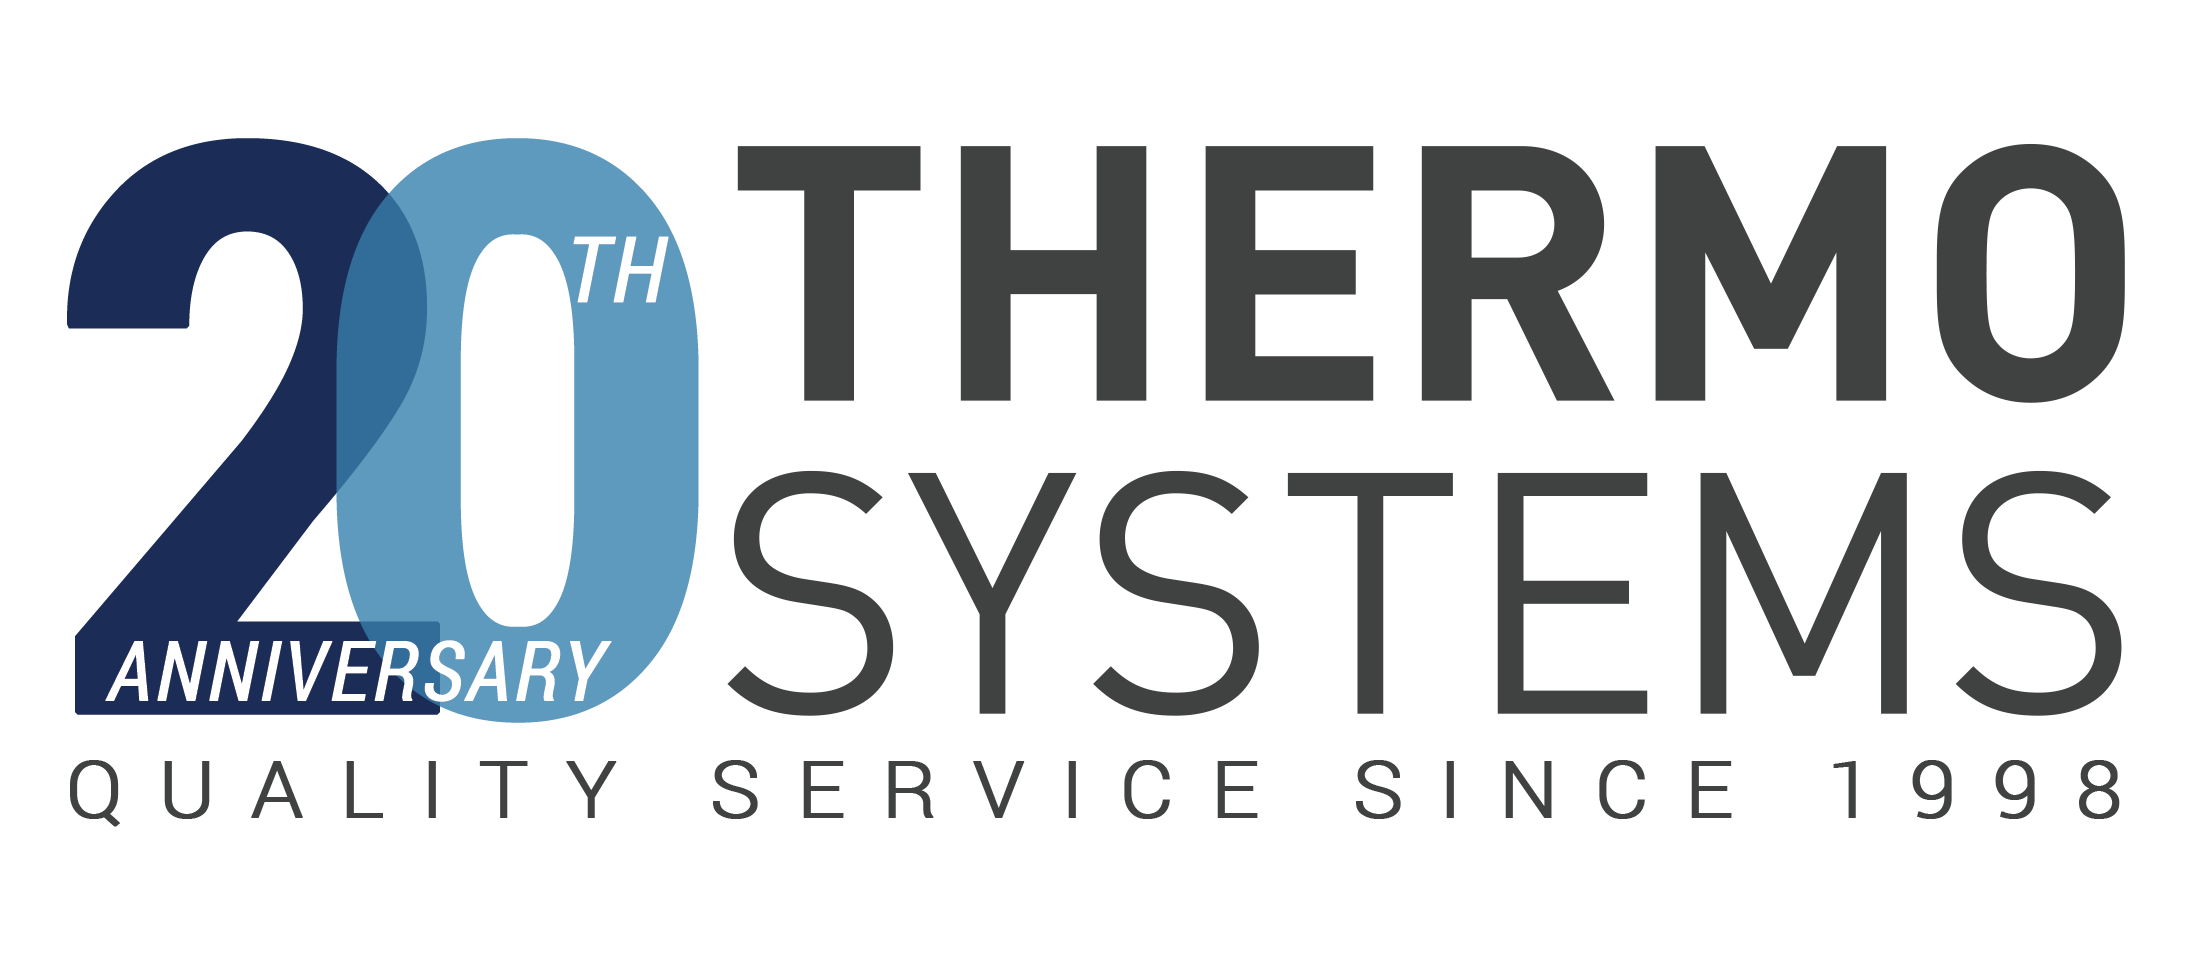 Thermo Systems 20th-Anniversary